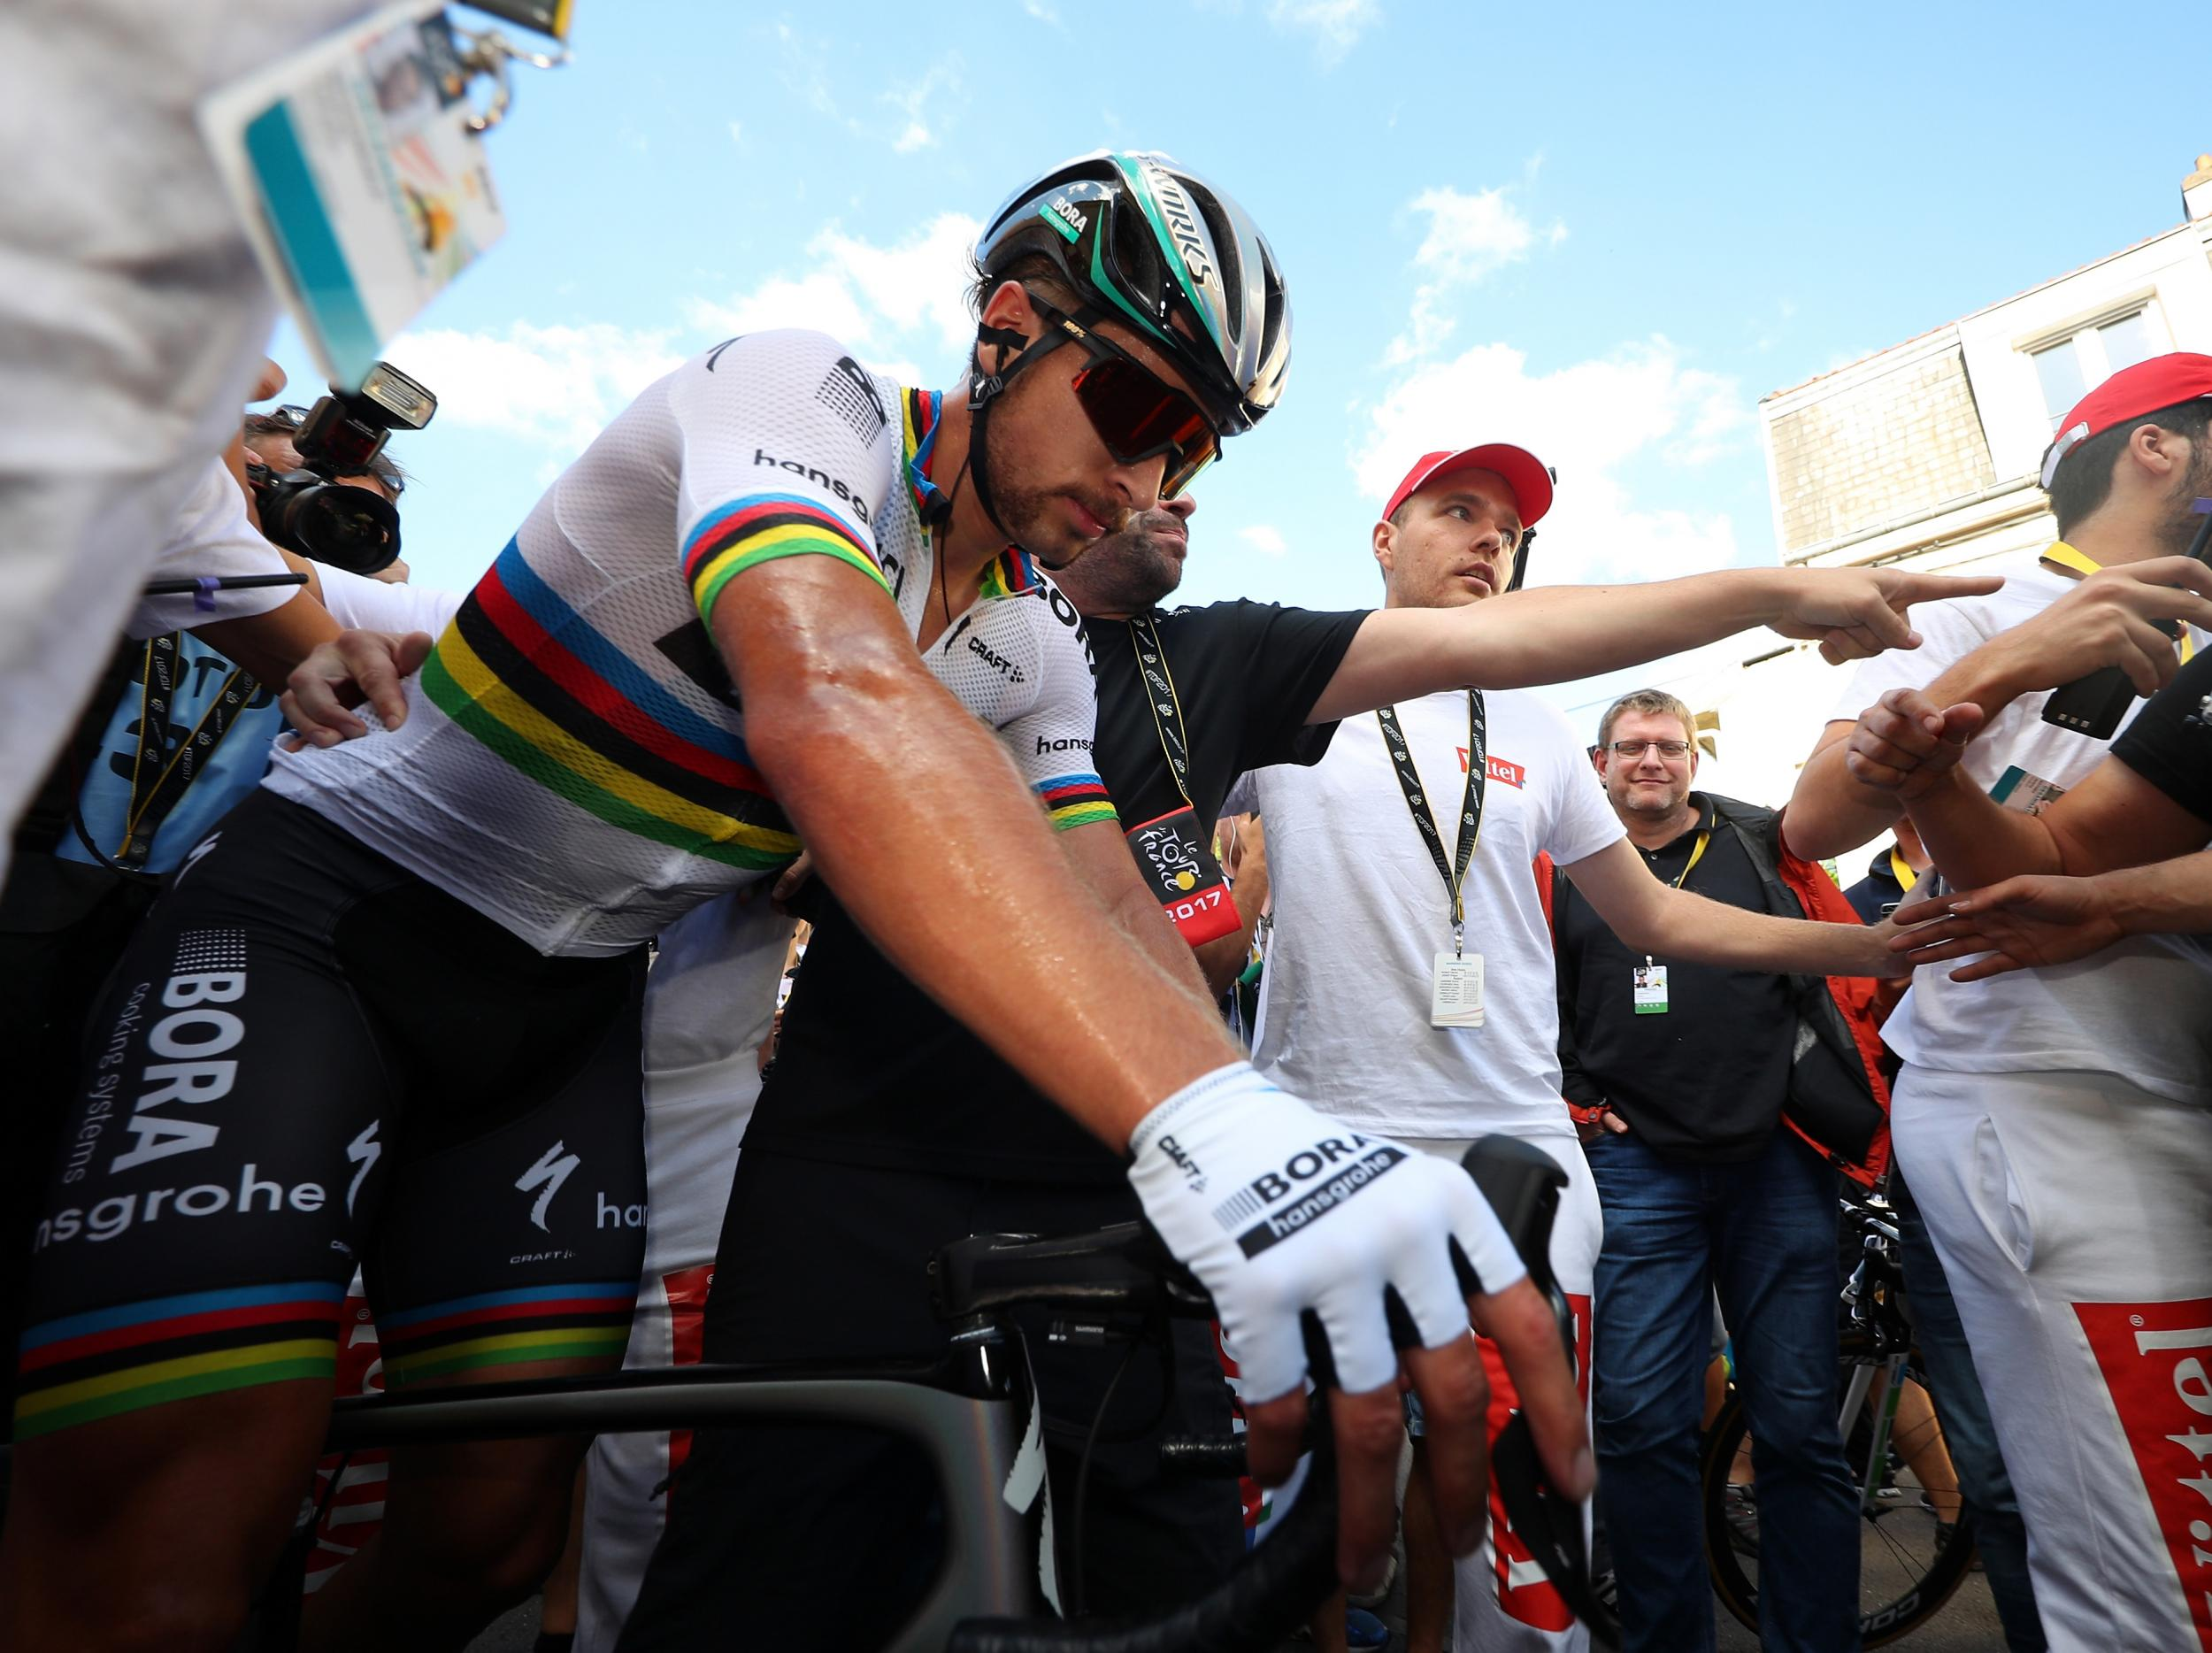 Tour de france 2017 peter sagan sees bid to be reinstated tour de france 2017 peter sagan sees bid to be reinstated rejected by the court of arbitration for sport the independent fandeluxe Ebook collections